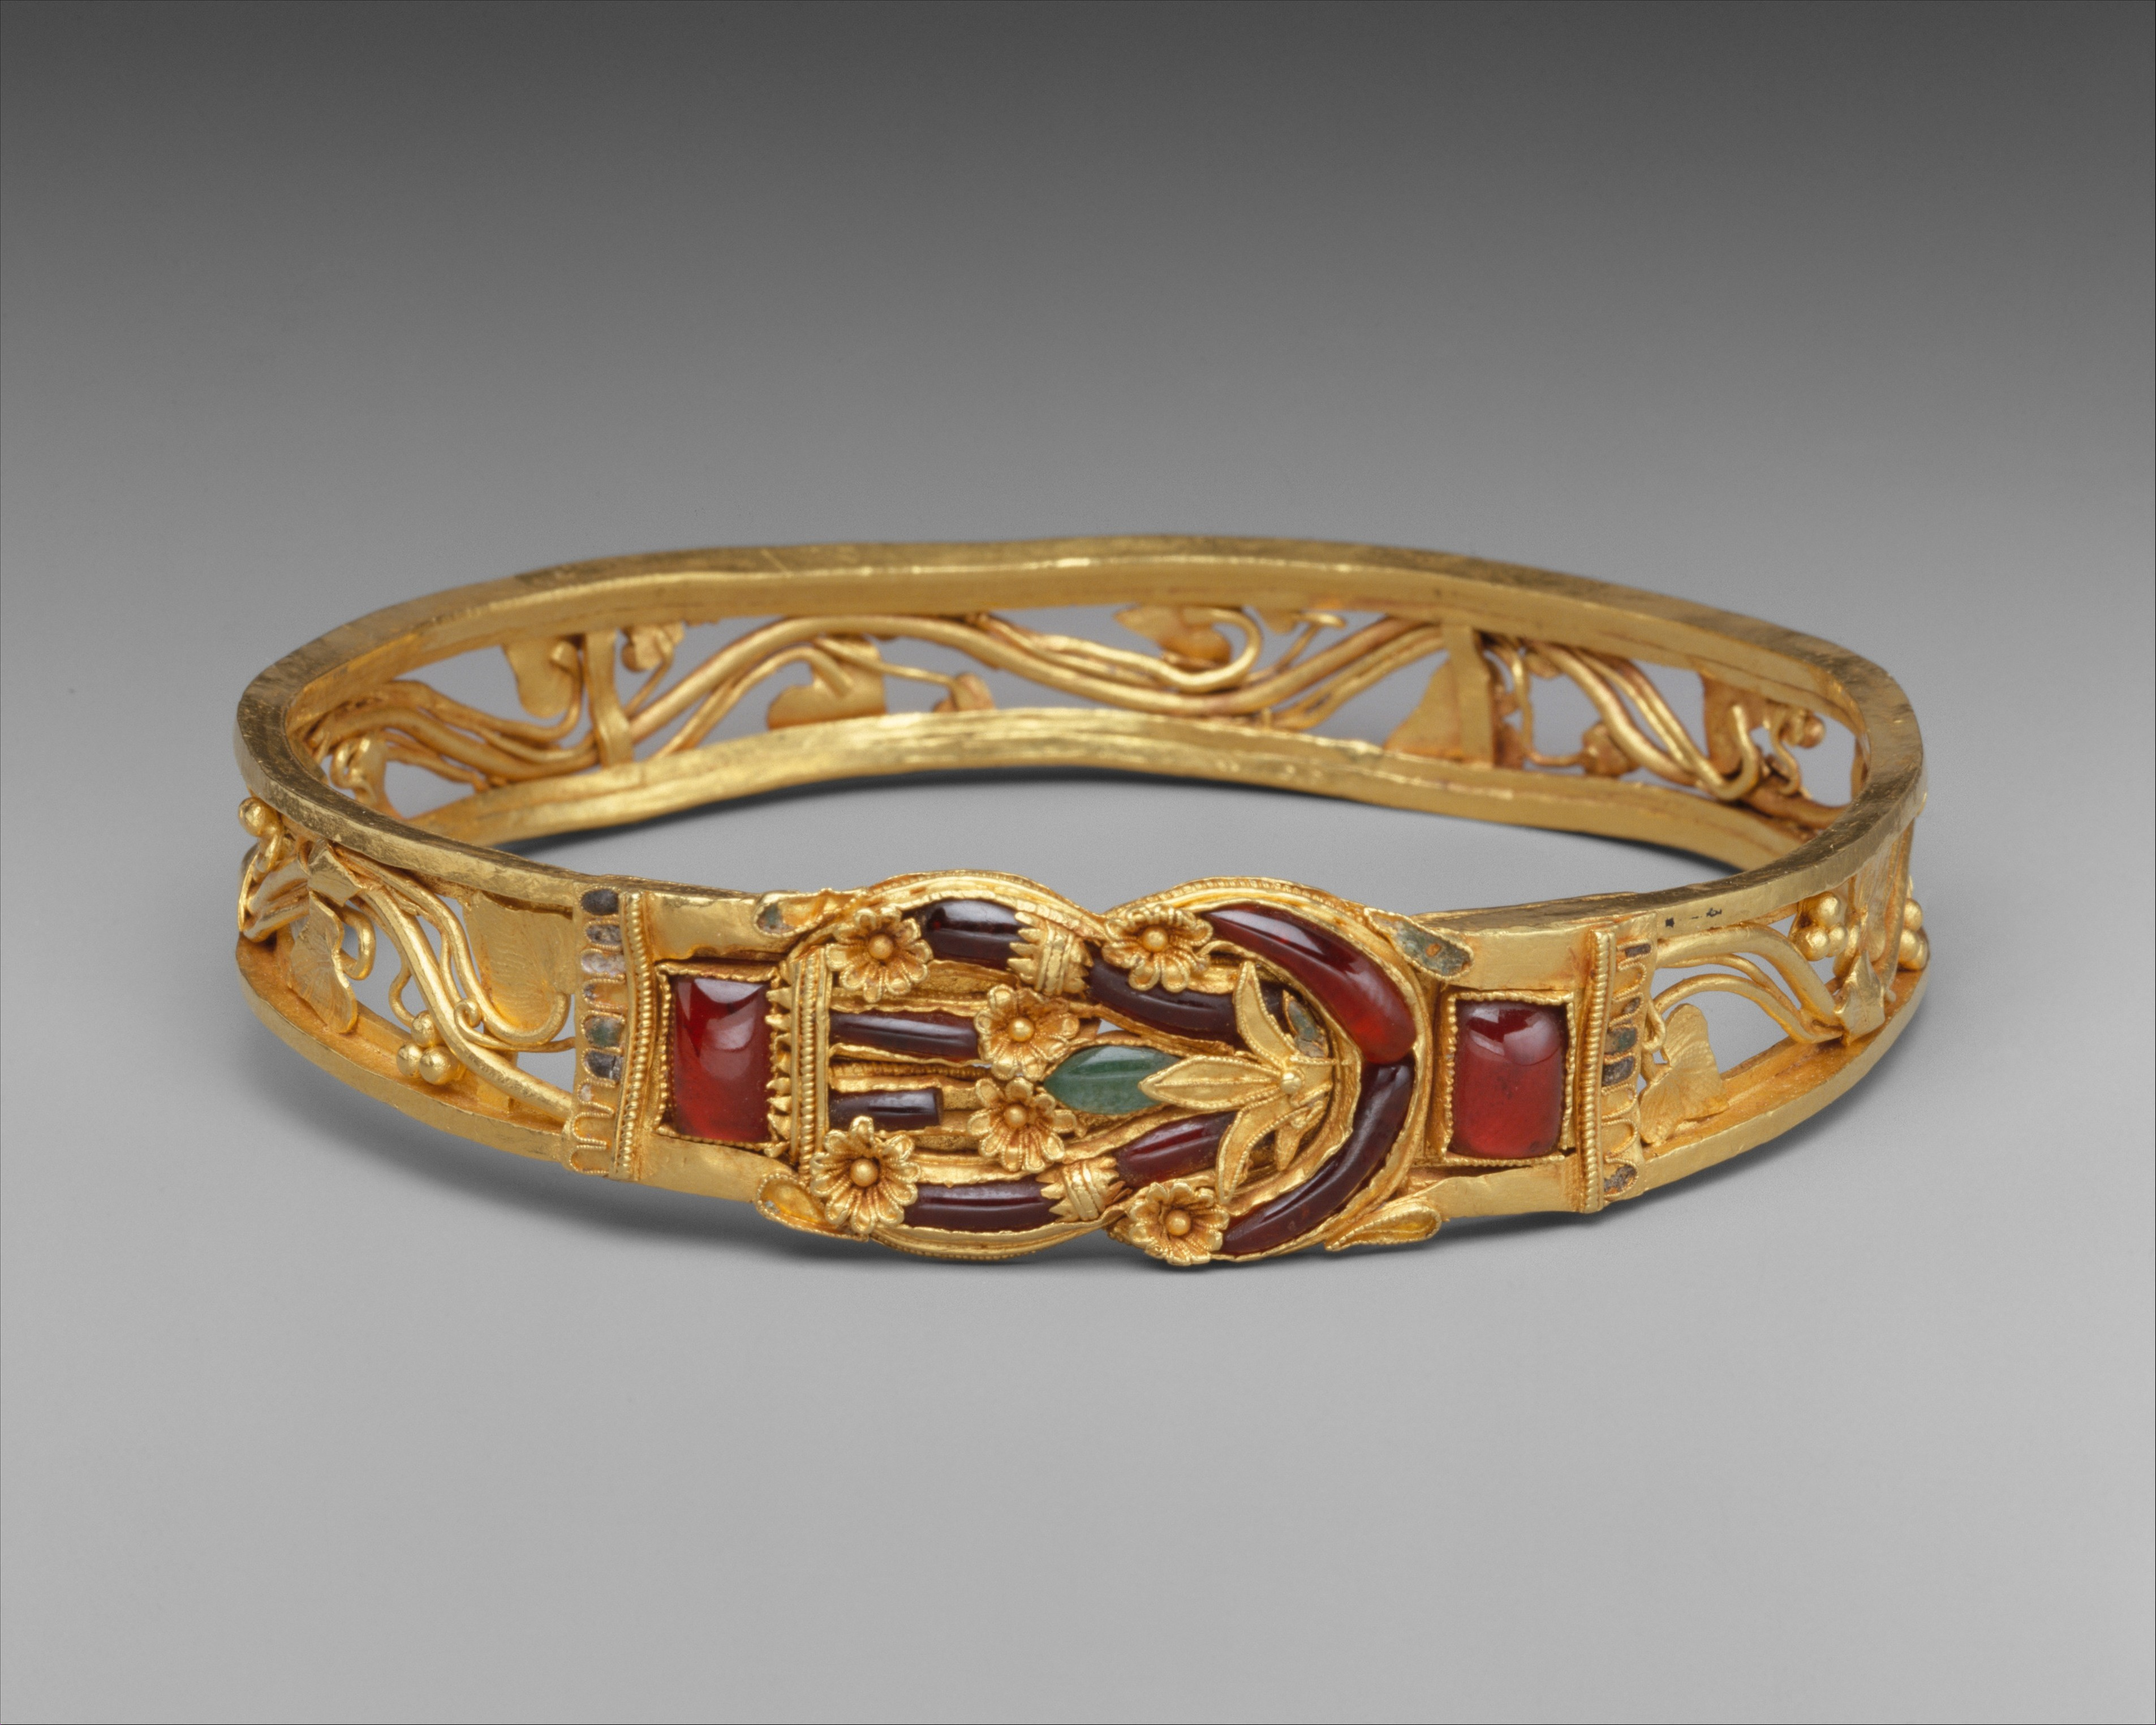 Gold Armband With Herakles Knot Greek Hellenistic The Metropolitan Museum Of Art